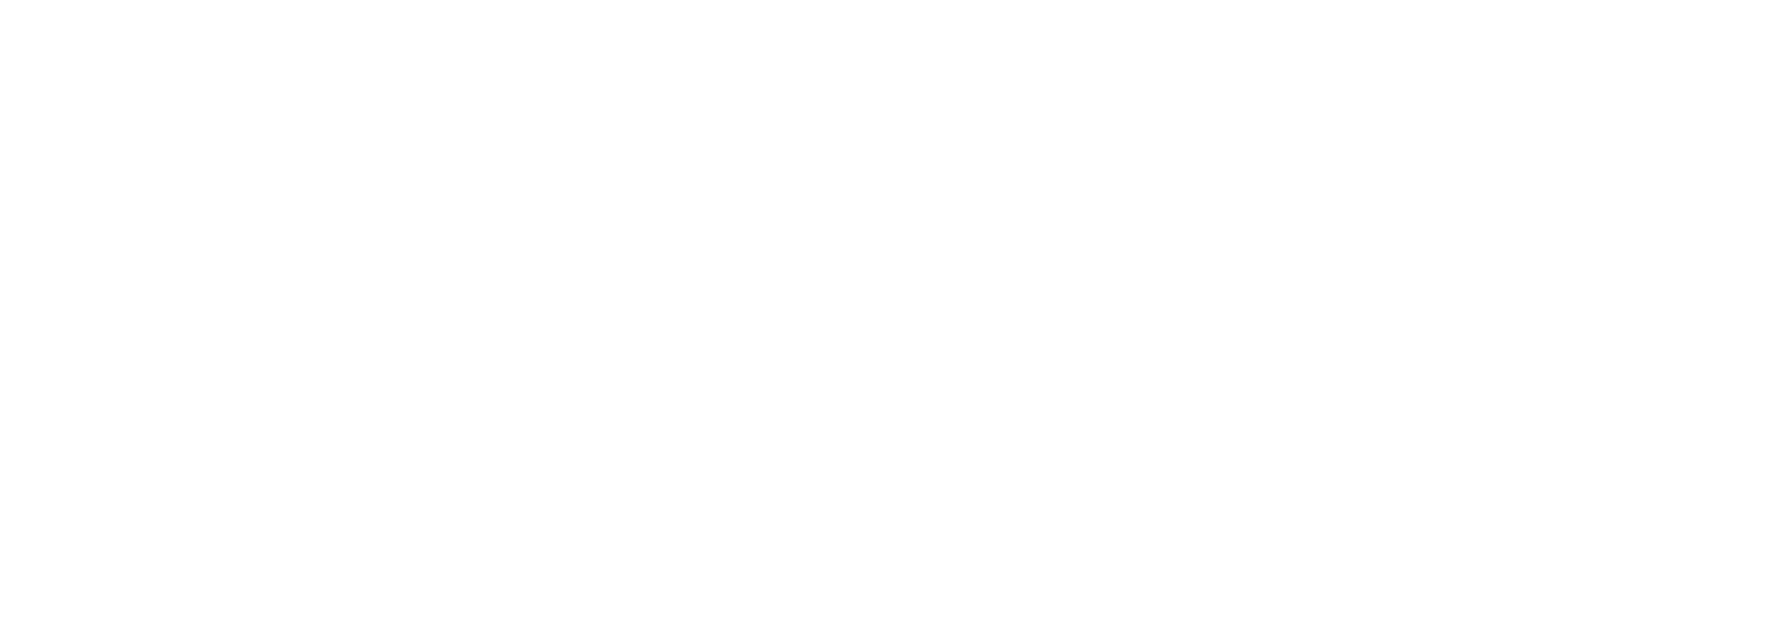 DeLorean Advokat - Innovation, Business & Law